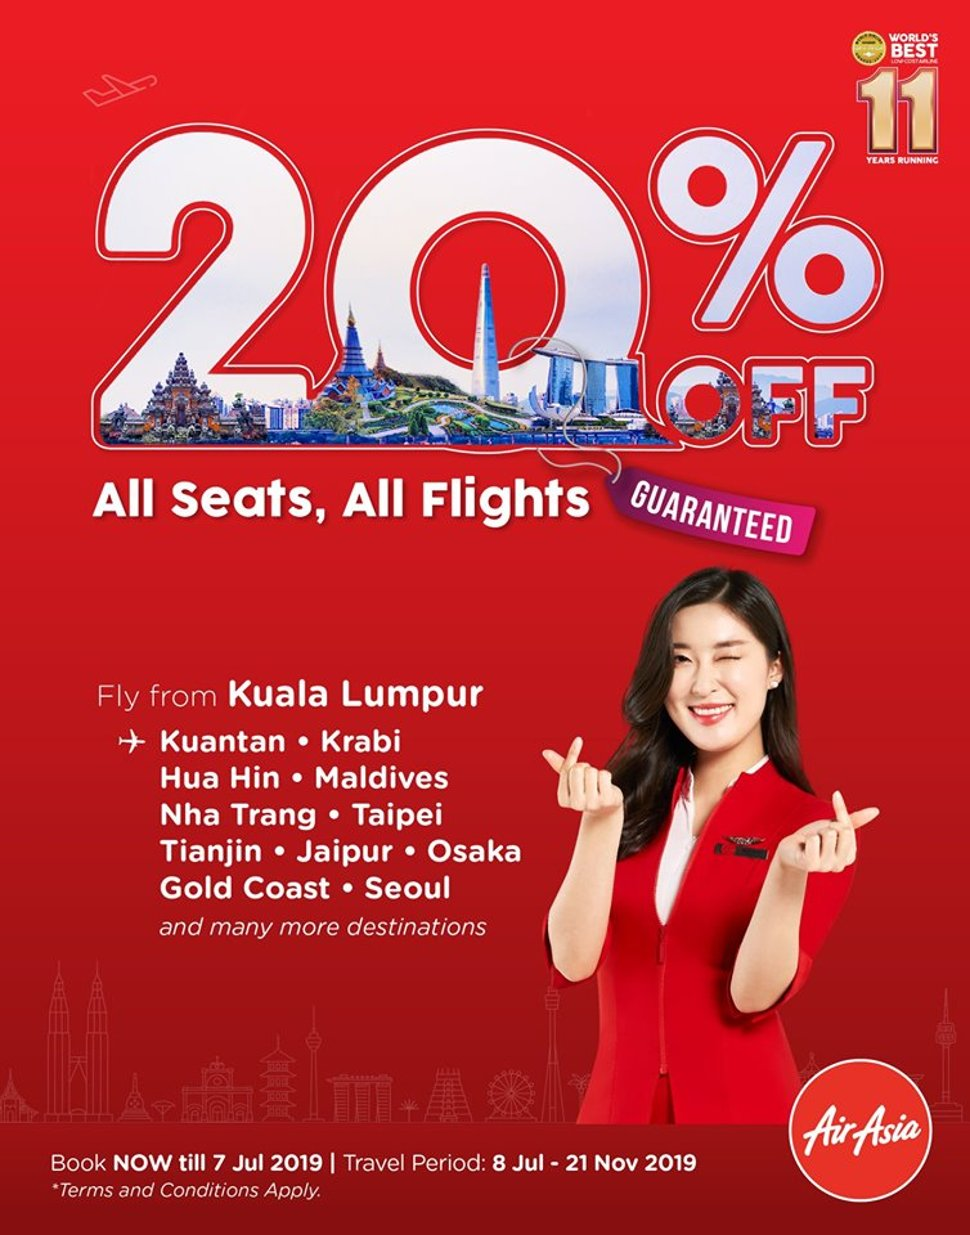 20% OFF, ALL SEATS, ALL FLIGHTS